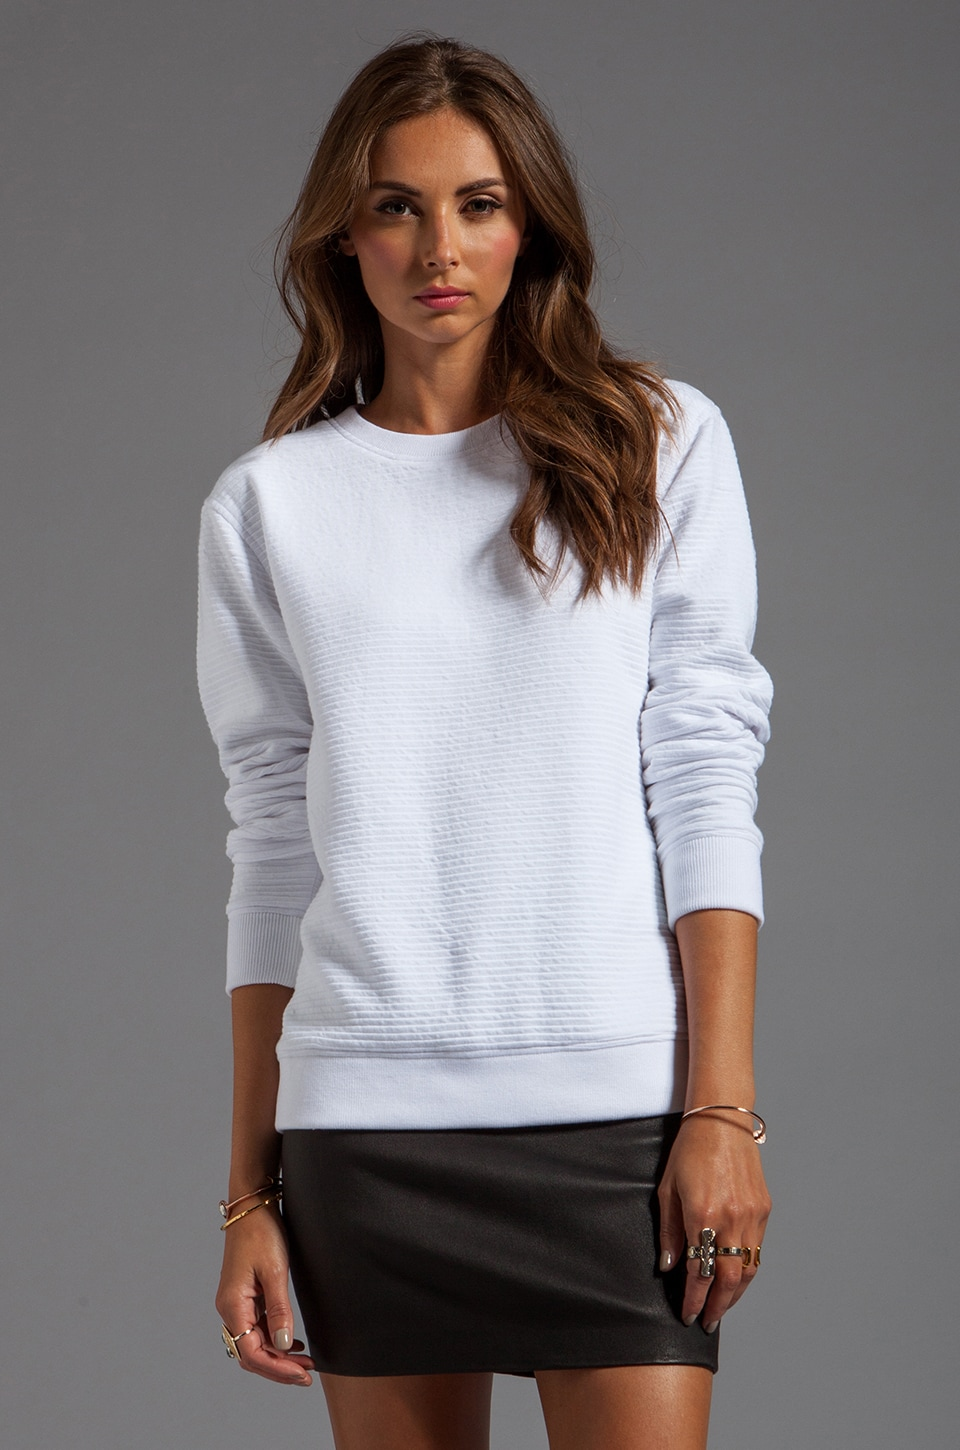 T by Alexander Wang Ottoman Double Knit Sweatshirt in White